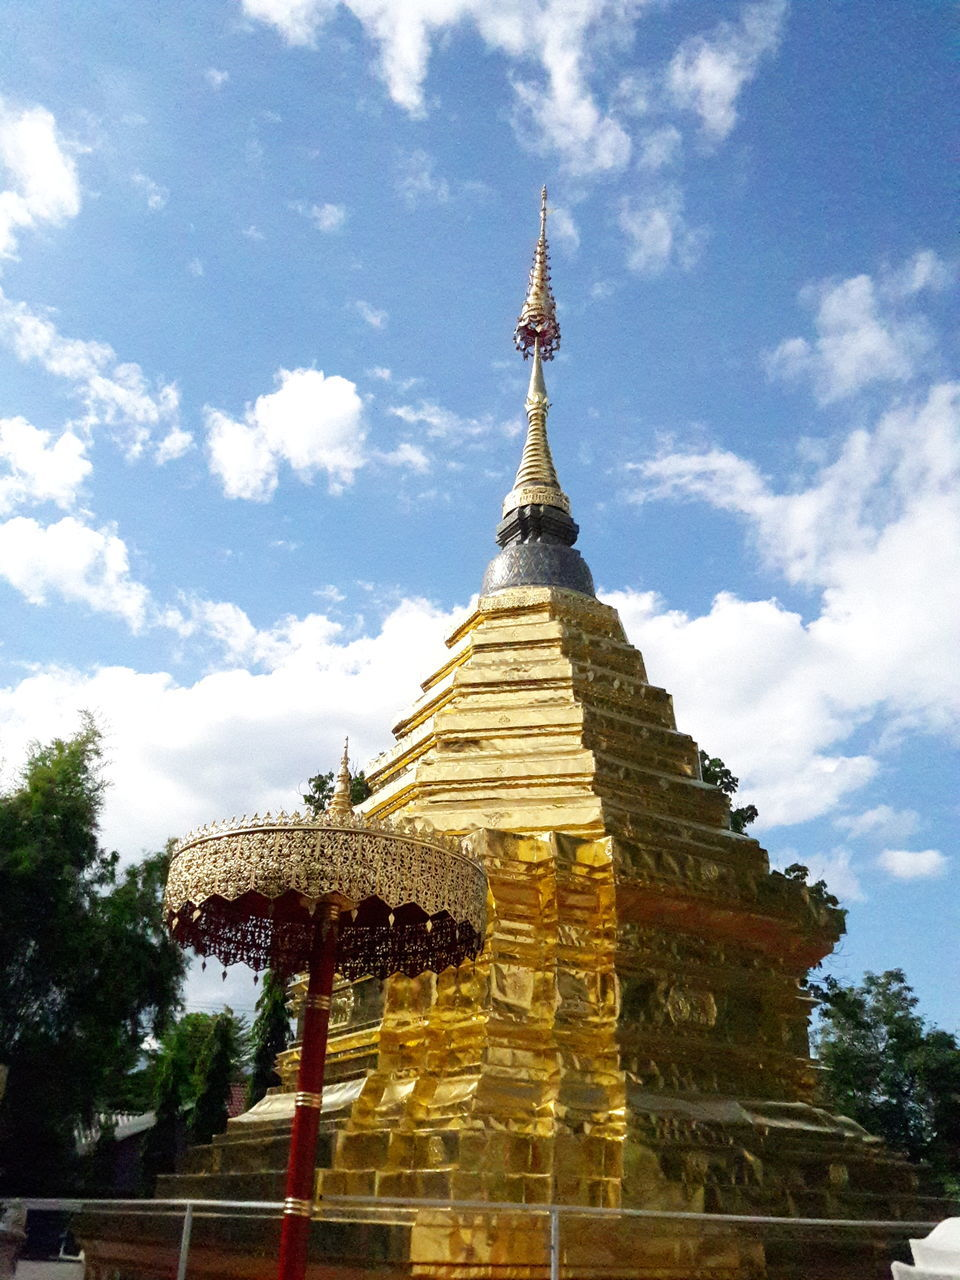 religion, spirituality, architecture, pagoda, sky, place of worship, built structure, no people, history, building exterior, cloud - sky, ancient, gold colored, day, travel destinations, tree, statue, outdoors, nature